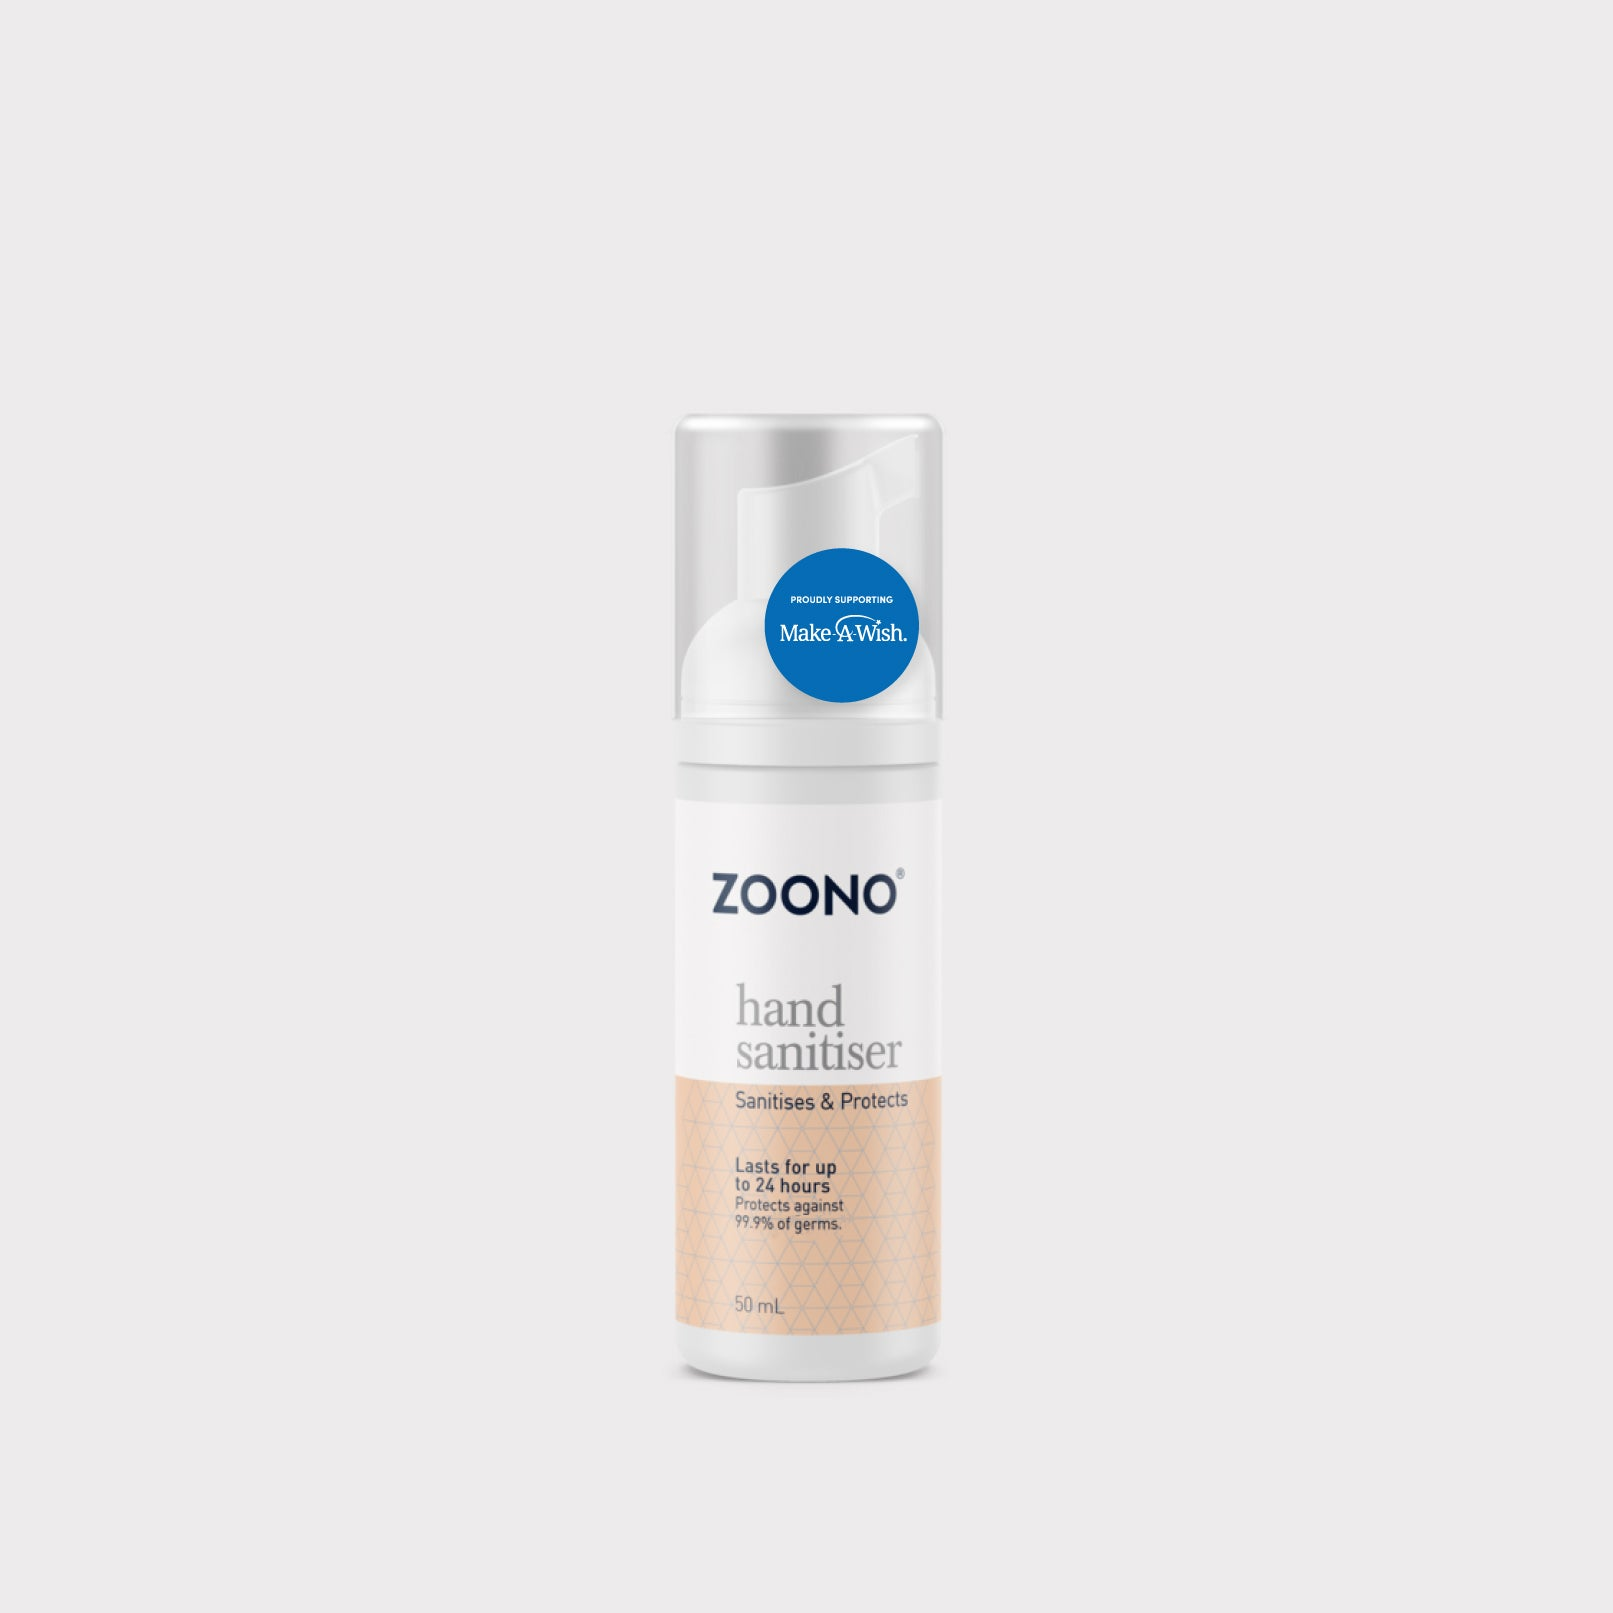 Zoono Hand Sanitiser for Make-A-Wish - 50mL